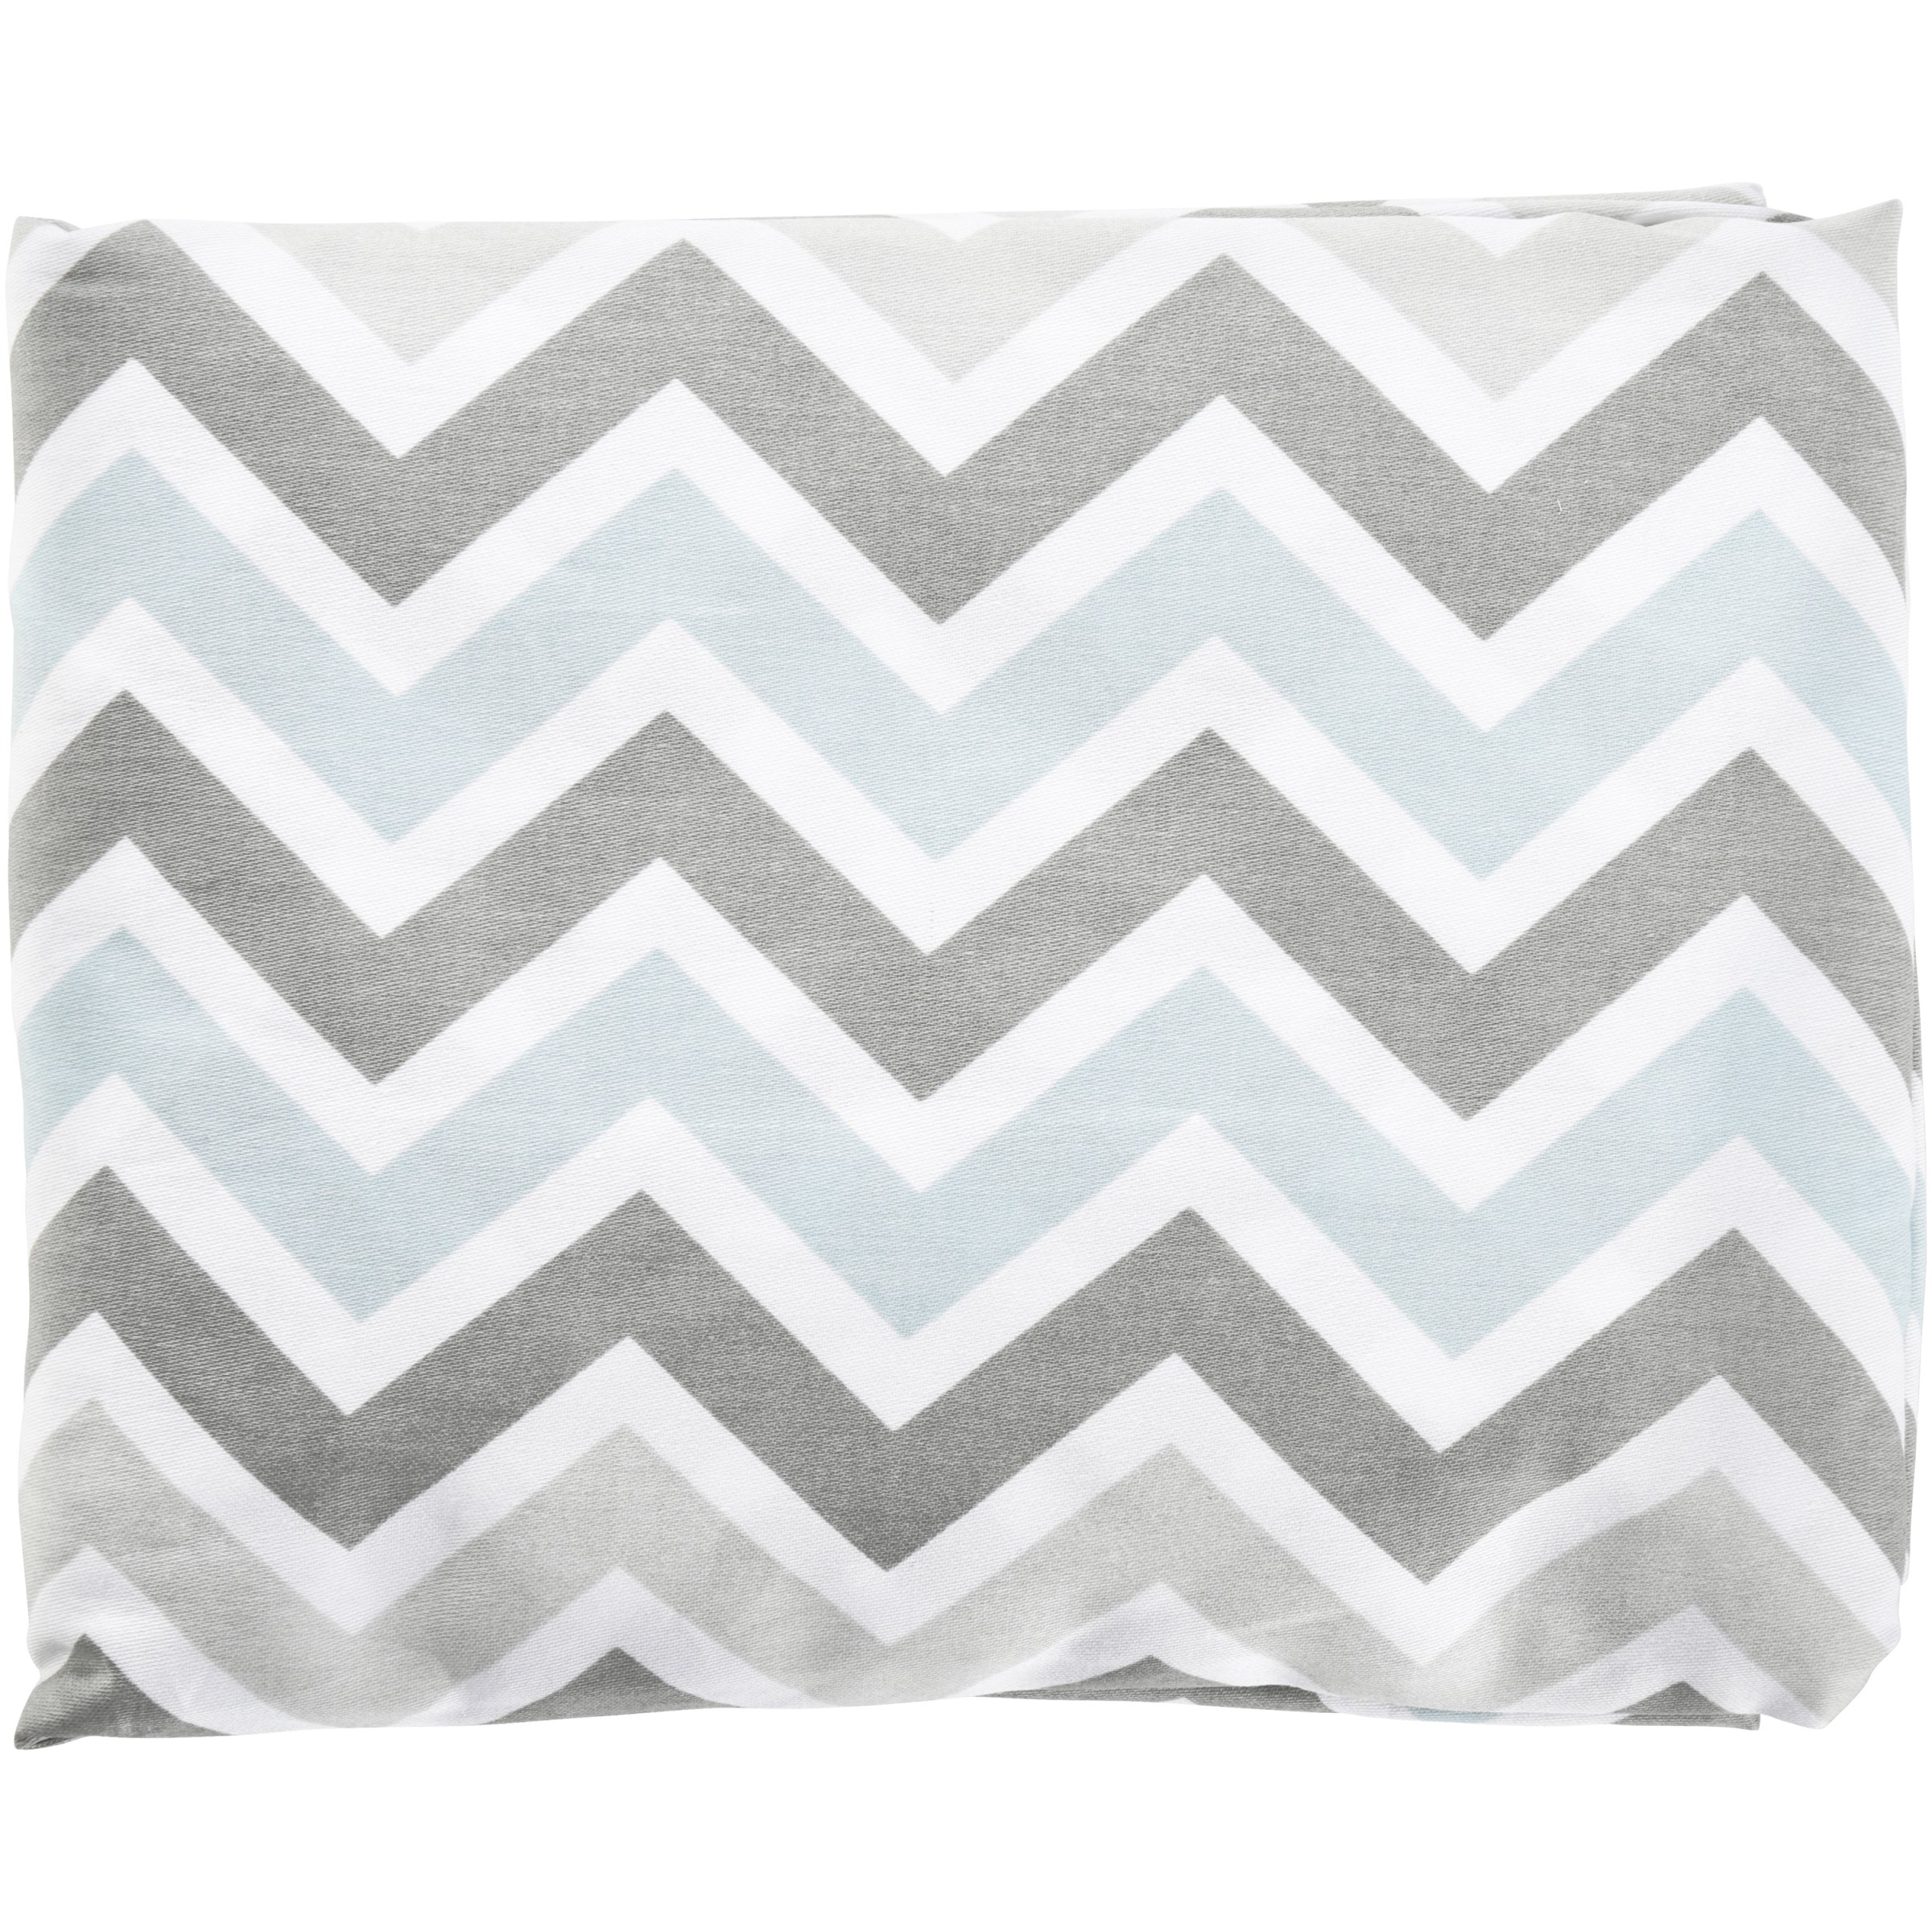 TL Care® 100% Cotton Percale Gray and Blue Chevron Fitted Crib Sheet